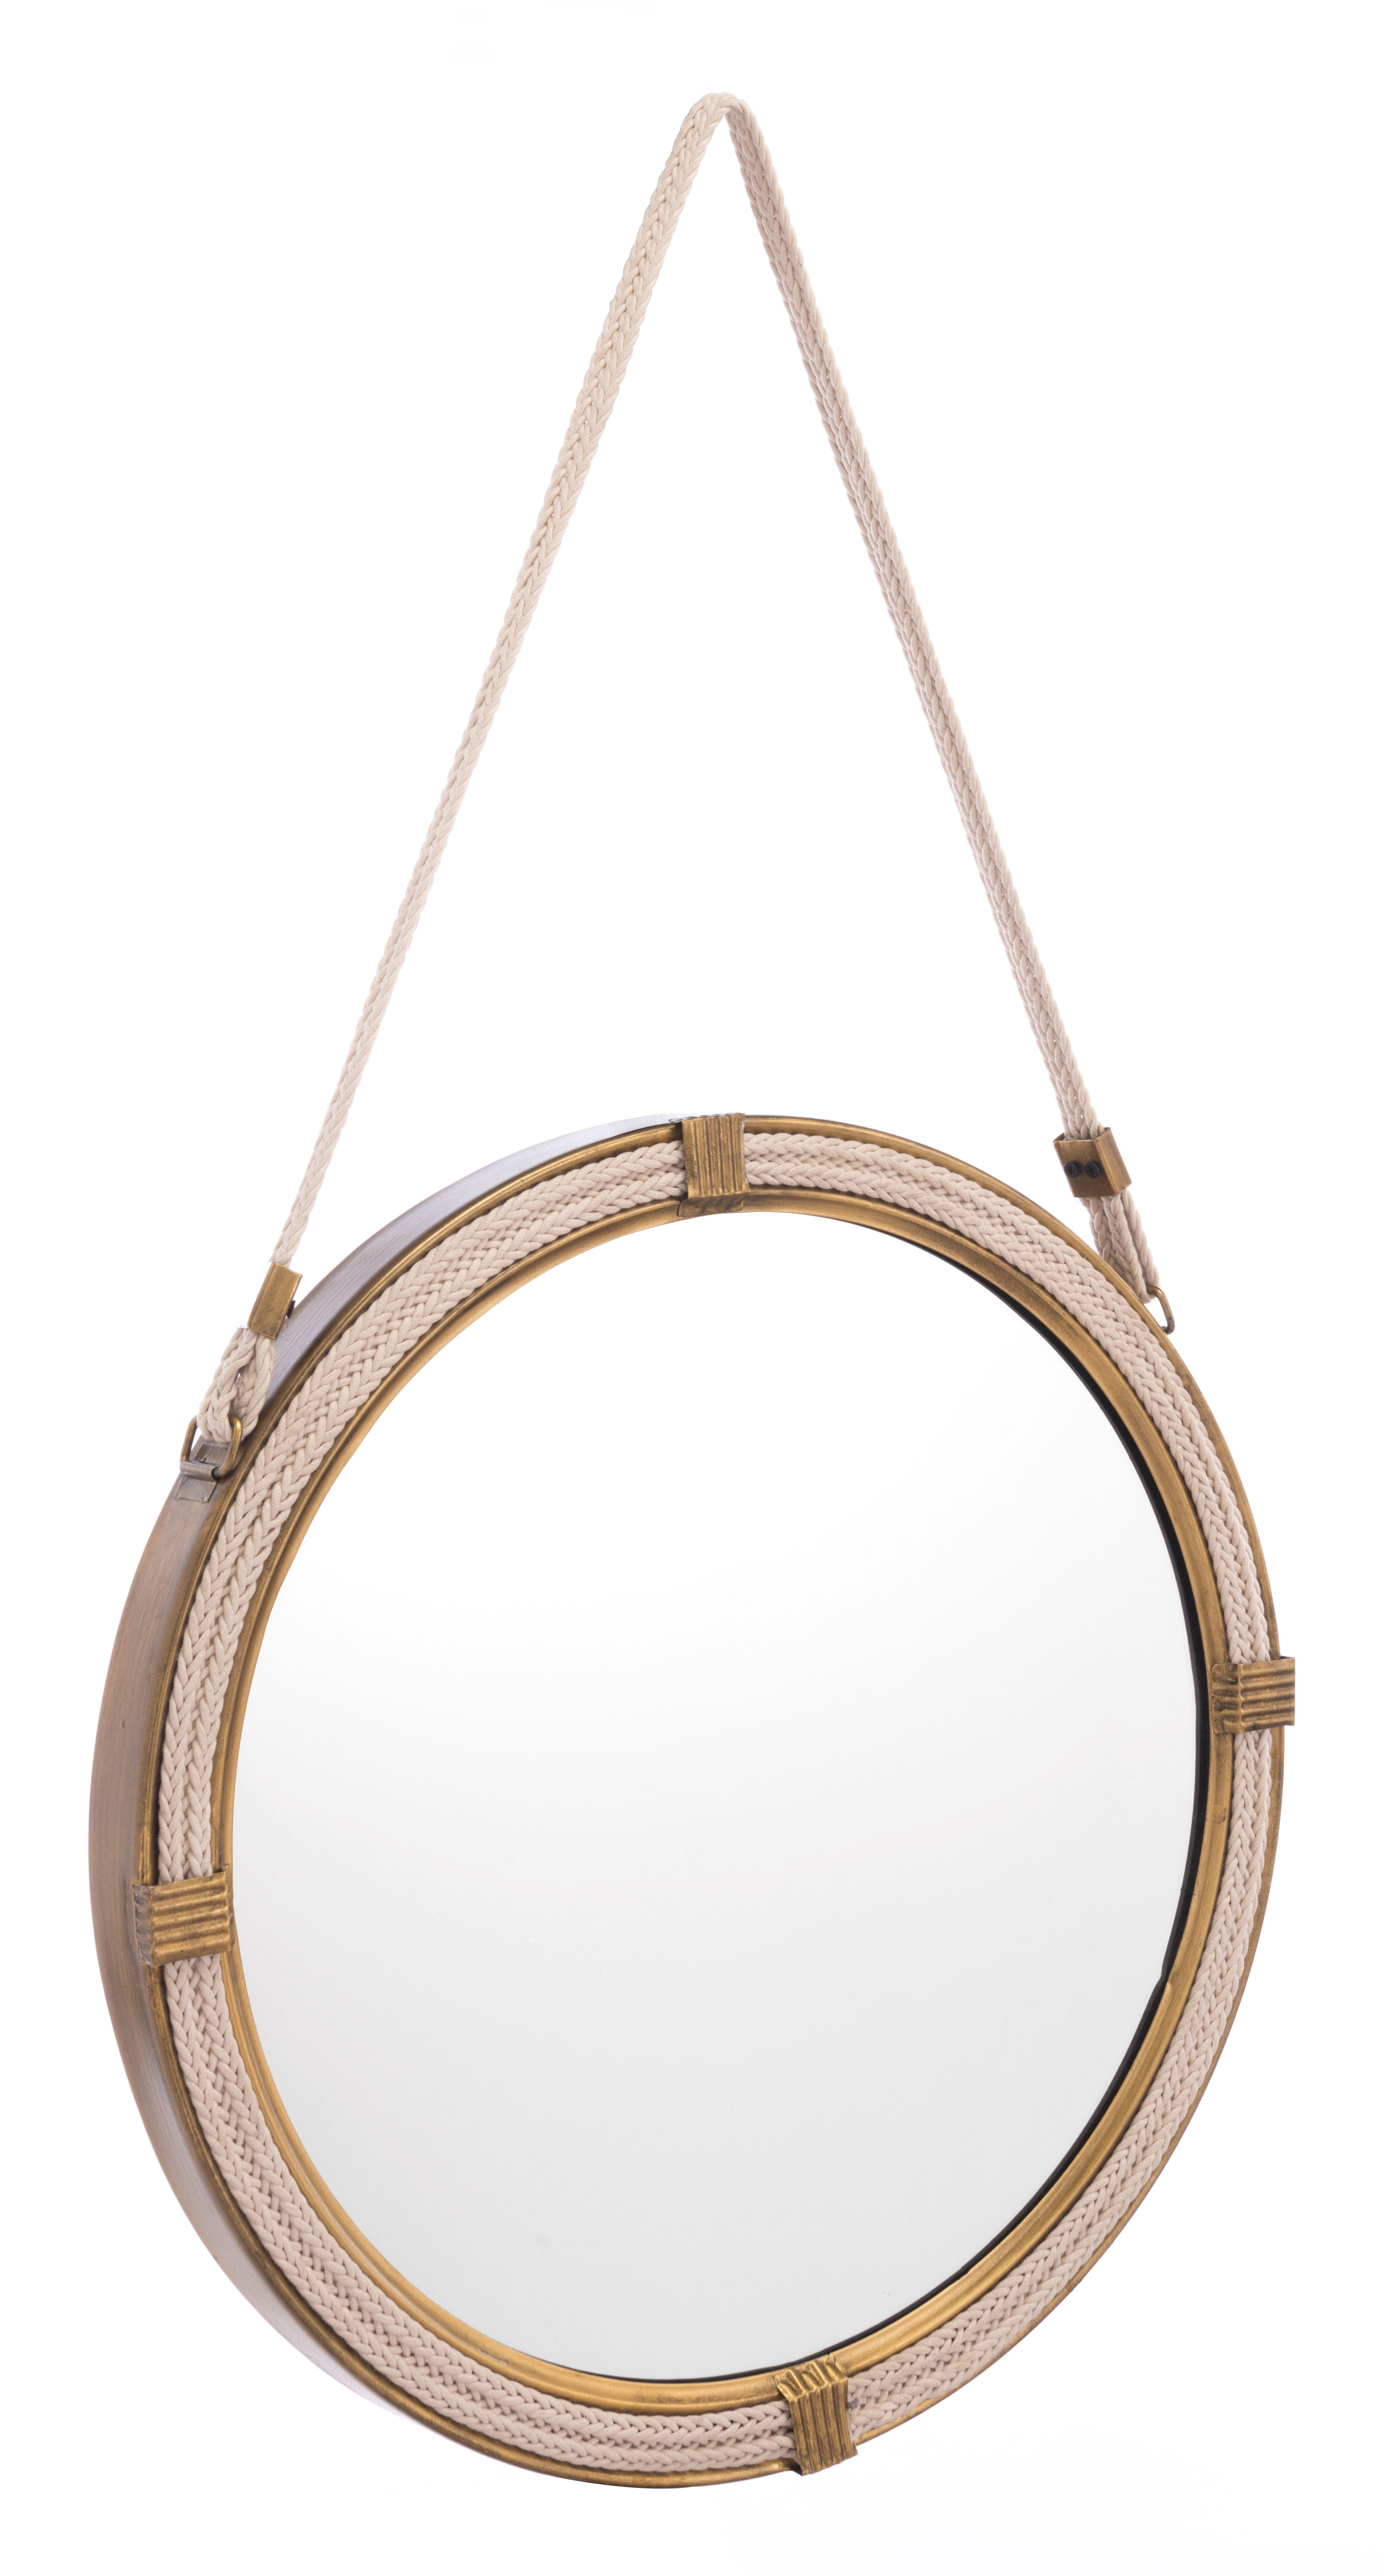 Knot Steel Round Hanging Mirror, Brass Finish | Products With Knott Modern & Contemporary Accent Mirrors (Image 12 of 20)